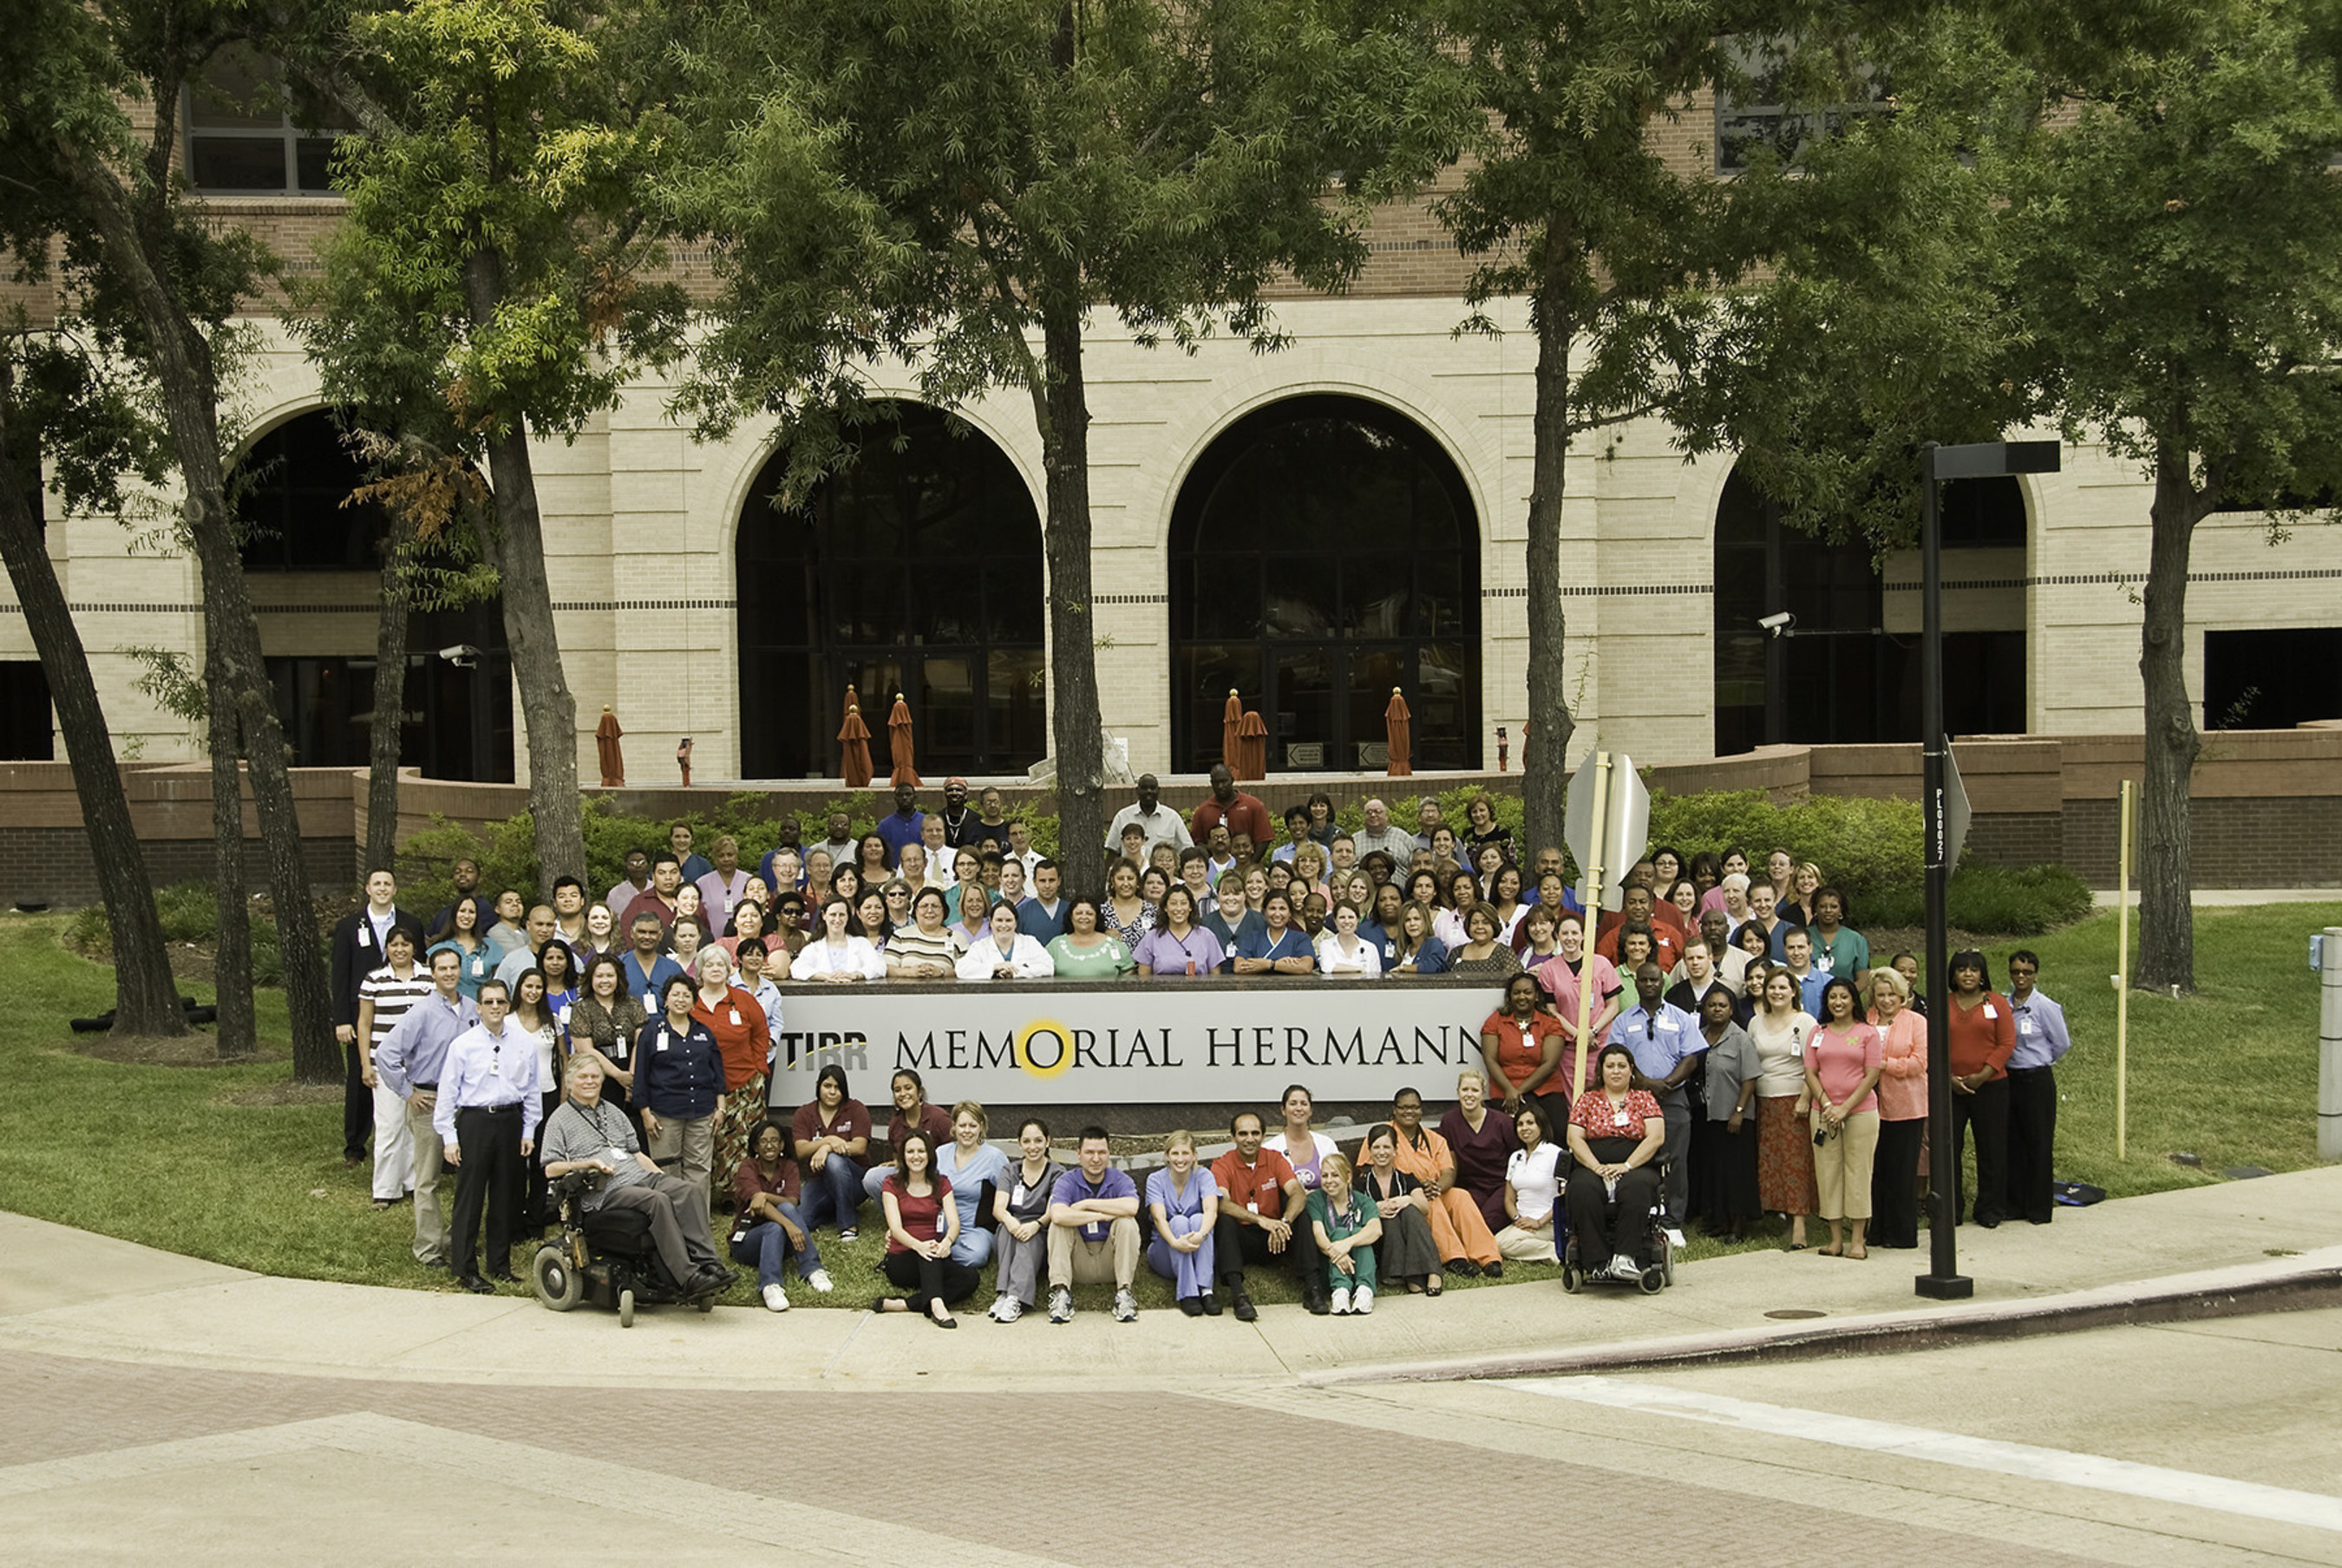 Houston's TIRR Memorial Hermann celebrates being named one of the country's top rehabilitation hospitals according to U.S. News & World Report. This is the 26th consecutive year TIRR Memorial Hermann has been included in the rankings.